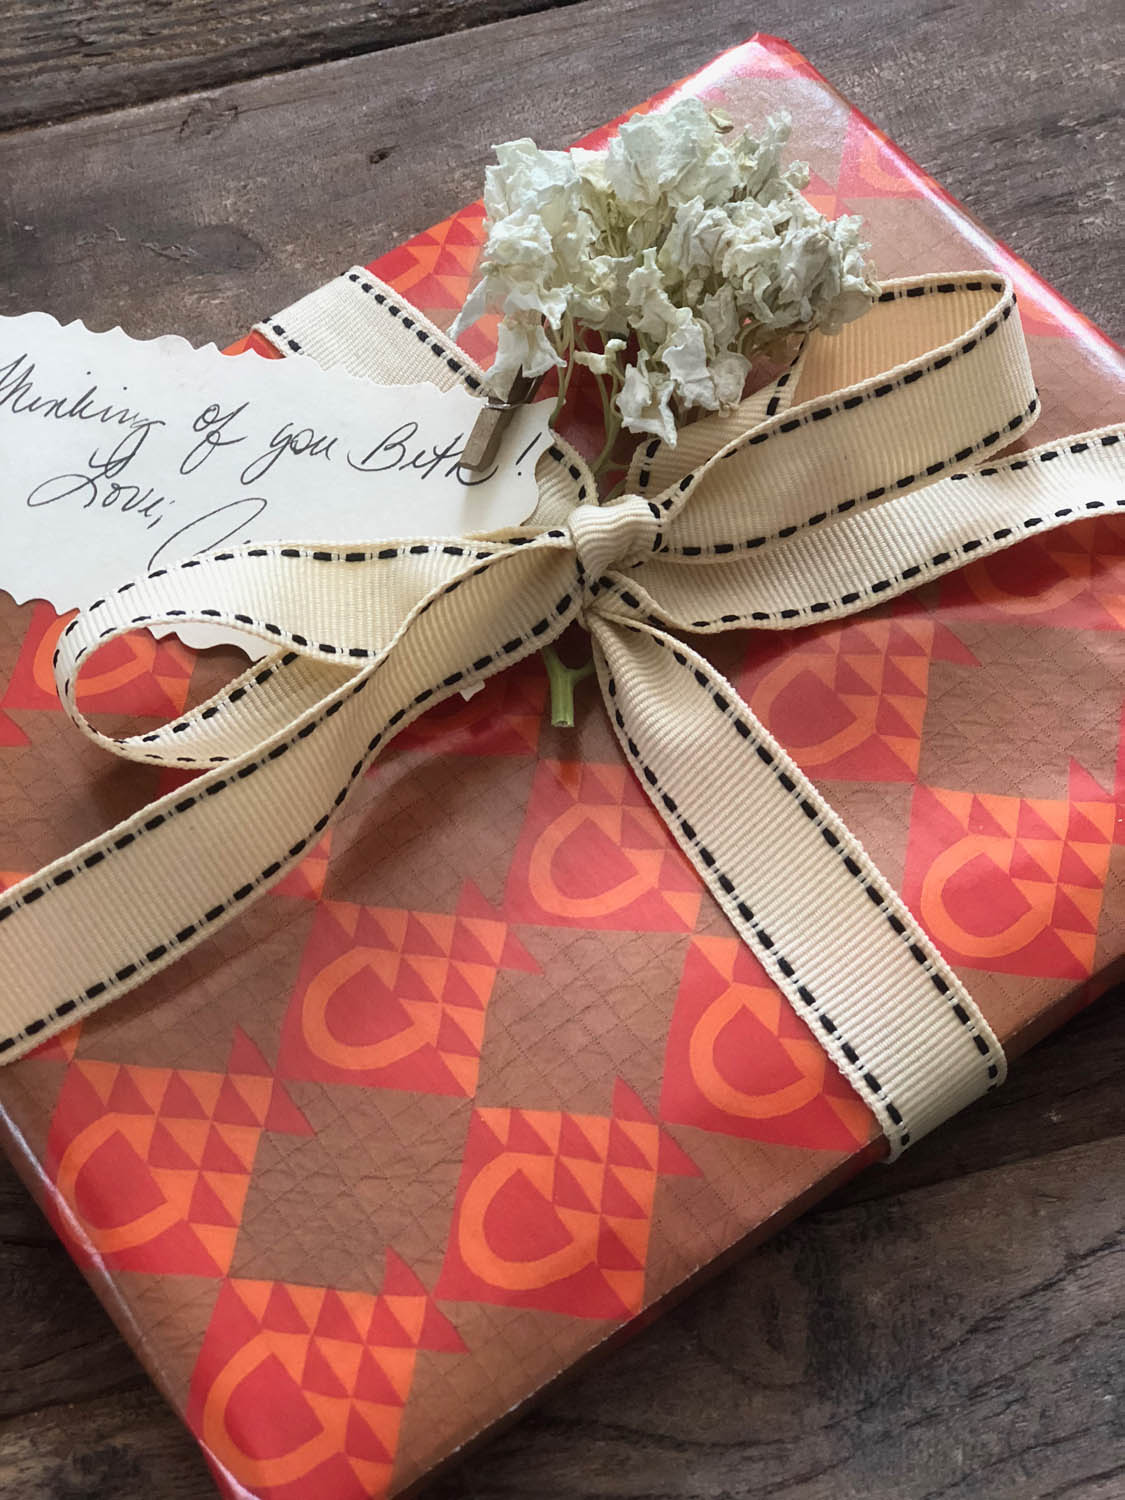 birthday gift wrapped in quilt basket paper with dried flowers and ribbon embellishments